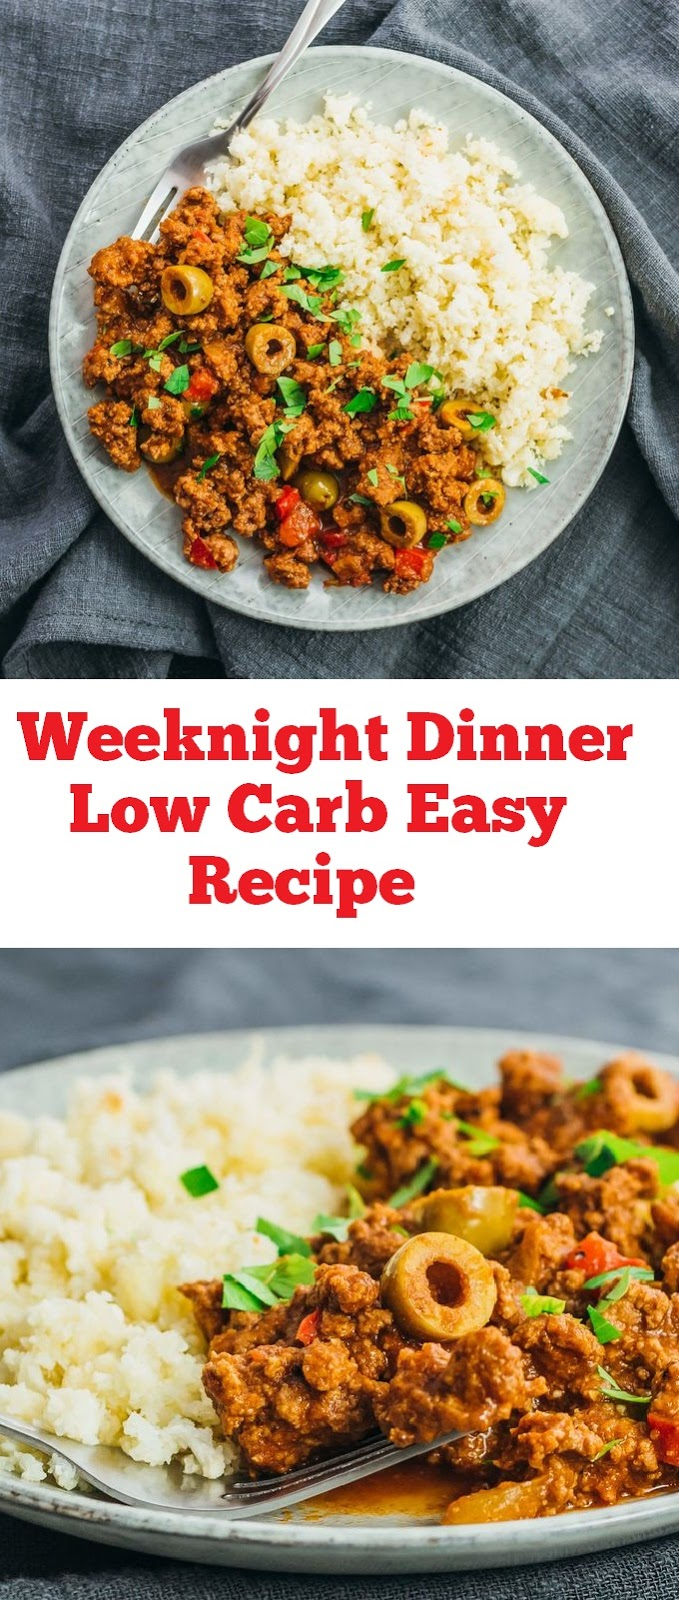 This Weeknight Dinner Low Carb Easy Recipe are Picadillo is Amazing flavor and it is a Paleo, Whole30, gluten-free, dairy-free and keto recipe to make for an easy weeknight dinner. From start to finish, you can have this low carb and healthy family dinner recipe ready in under an hour! #lowcarb #healthydinner #glutenfree #keto #ketodinner #ketogenic #lowcarbdinner #dinner #weeknightdinner #weeknight #dairyfree #paleo